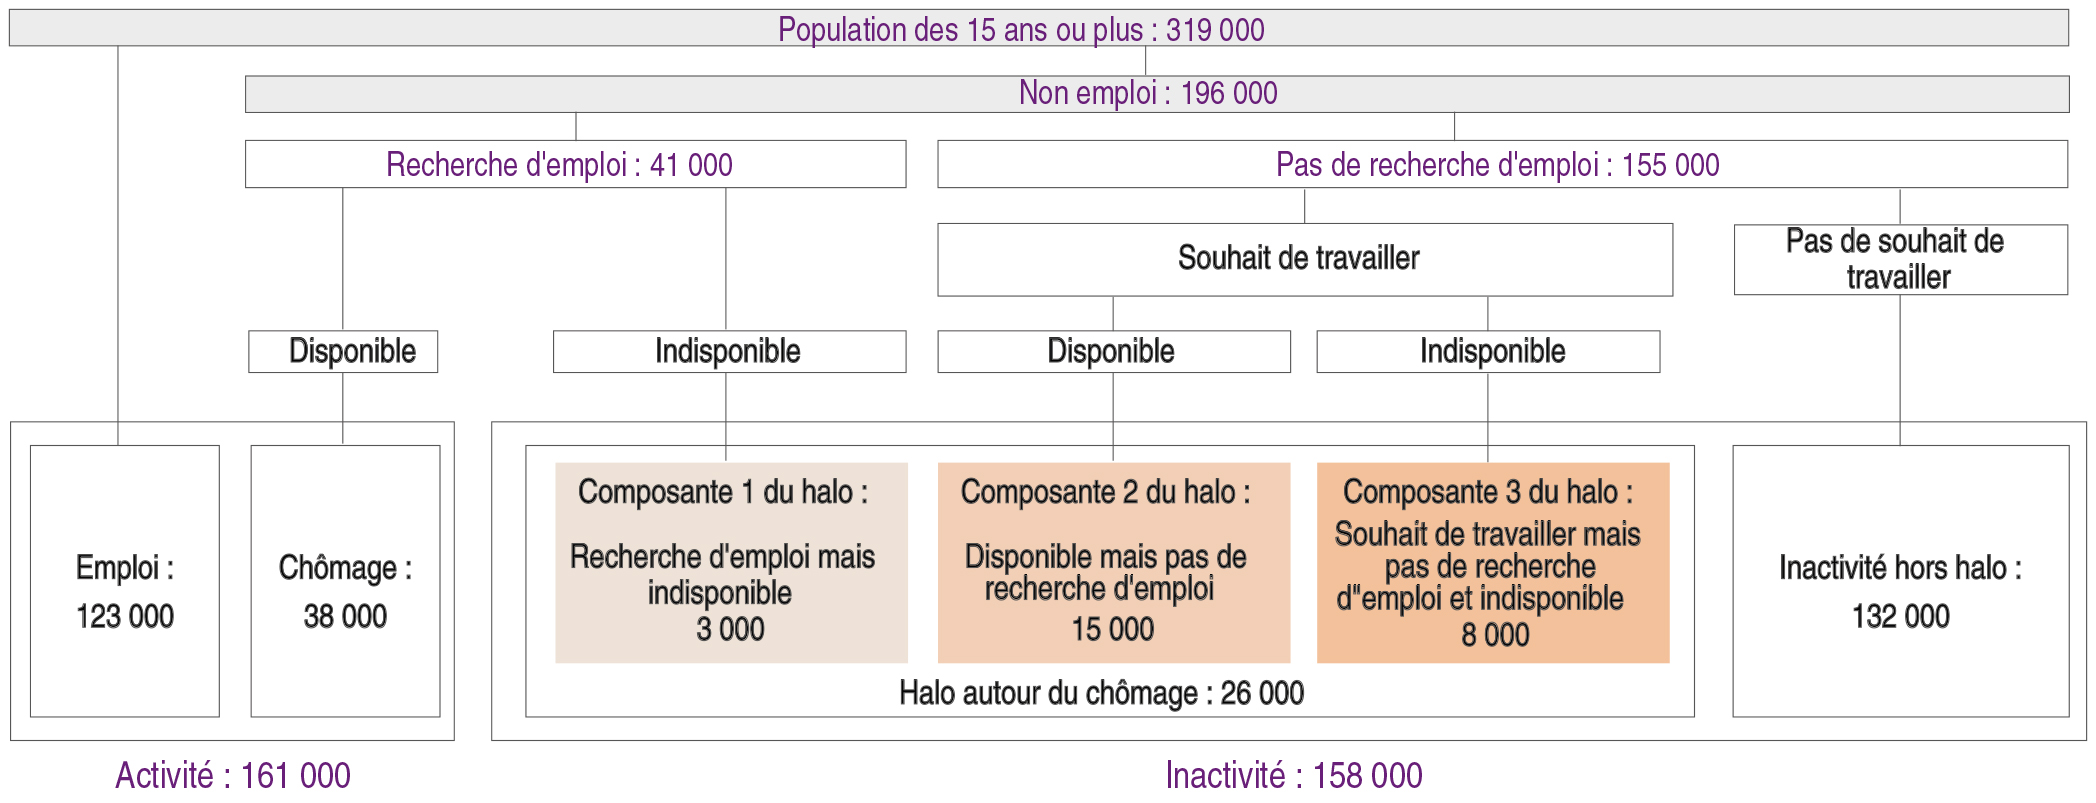 Stabilite Du Chomage En 2016 Insee Analyses Guadeloupe 21